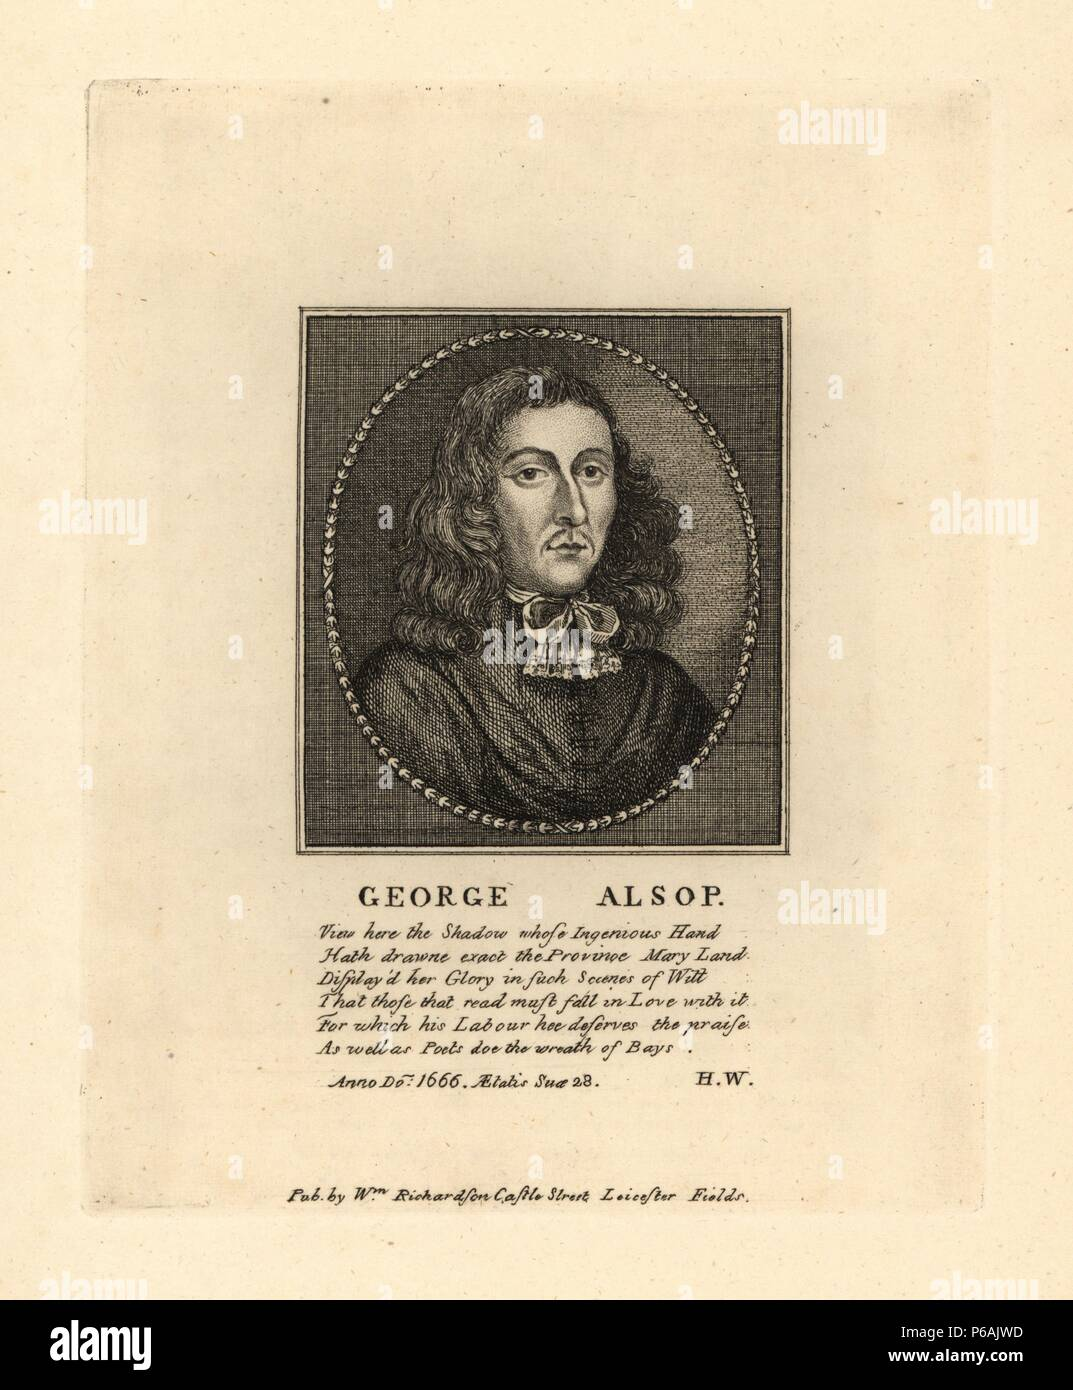 George Alsop, aged 28, author of 'A Character of the Province of Maryland,' 1666. Copperplate engraving from Richardson's 'Portraits illustrating Granger's Biographical History of England,' London, 1792–1812. Published by William Richardson, printseller, London. James Granger (1723–1776) was an English clergyman, biographer, and print collector. - Stock Image